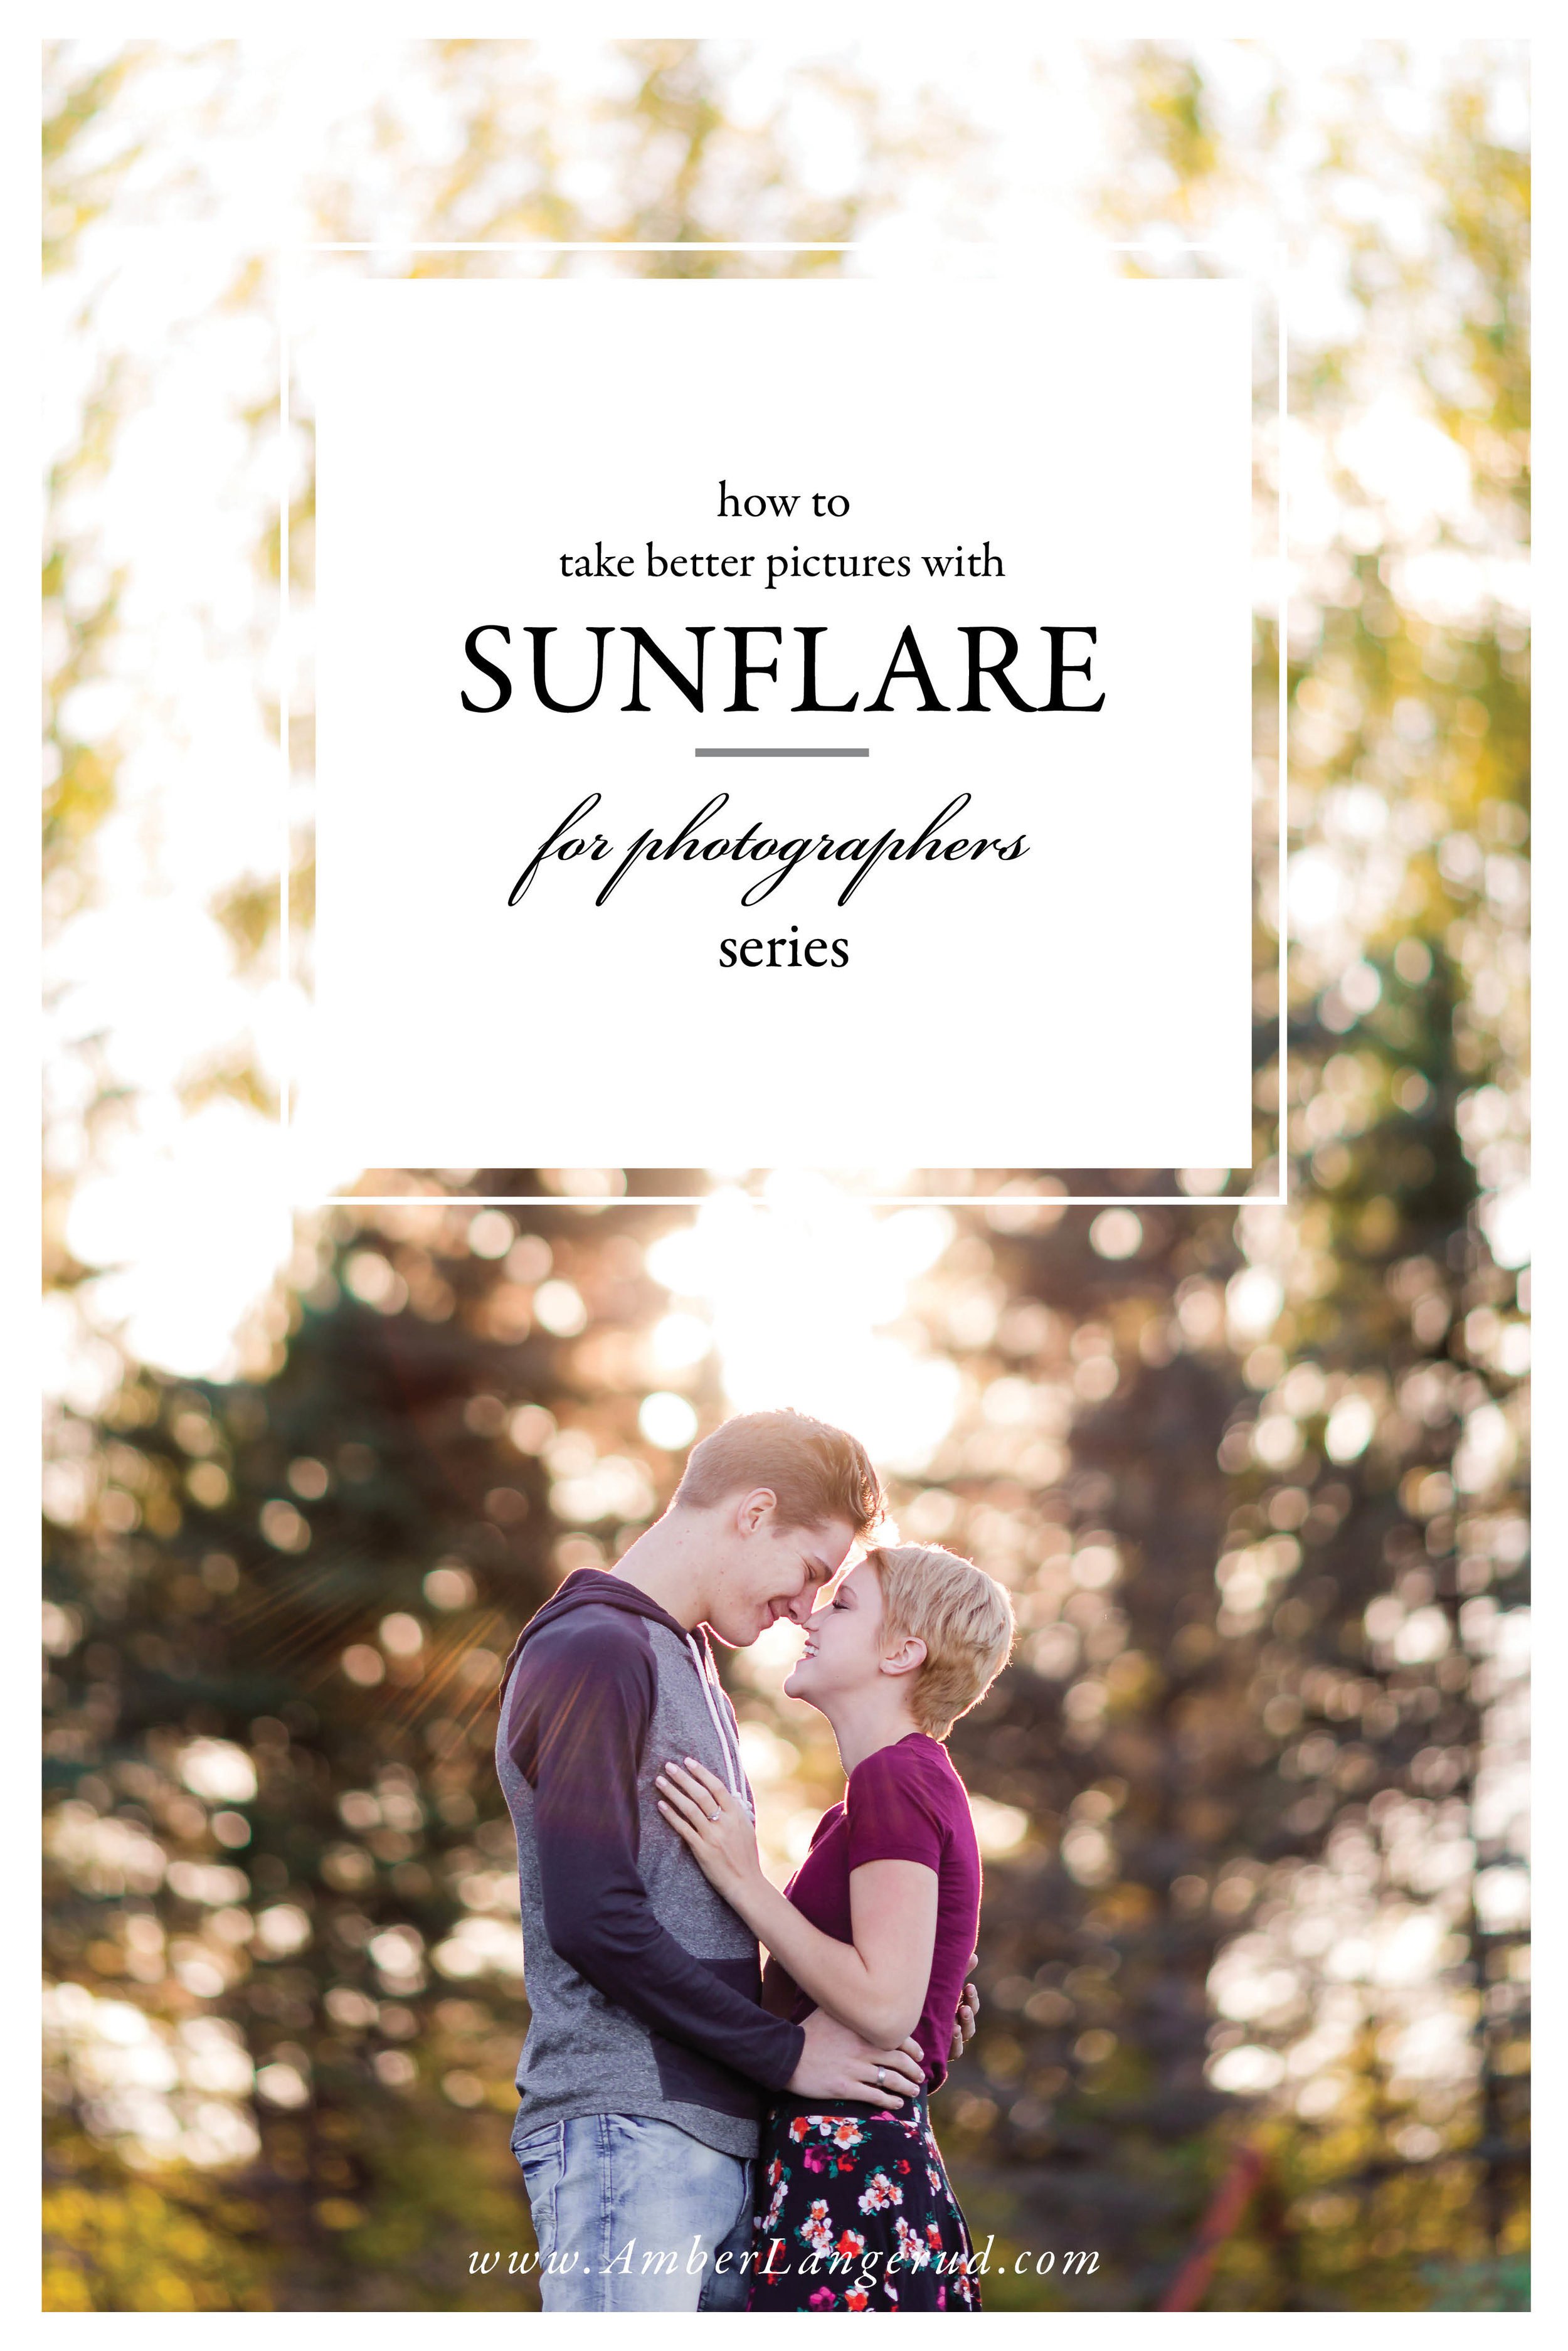 3 tips to better sunflare images every time